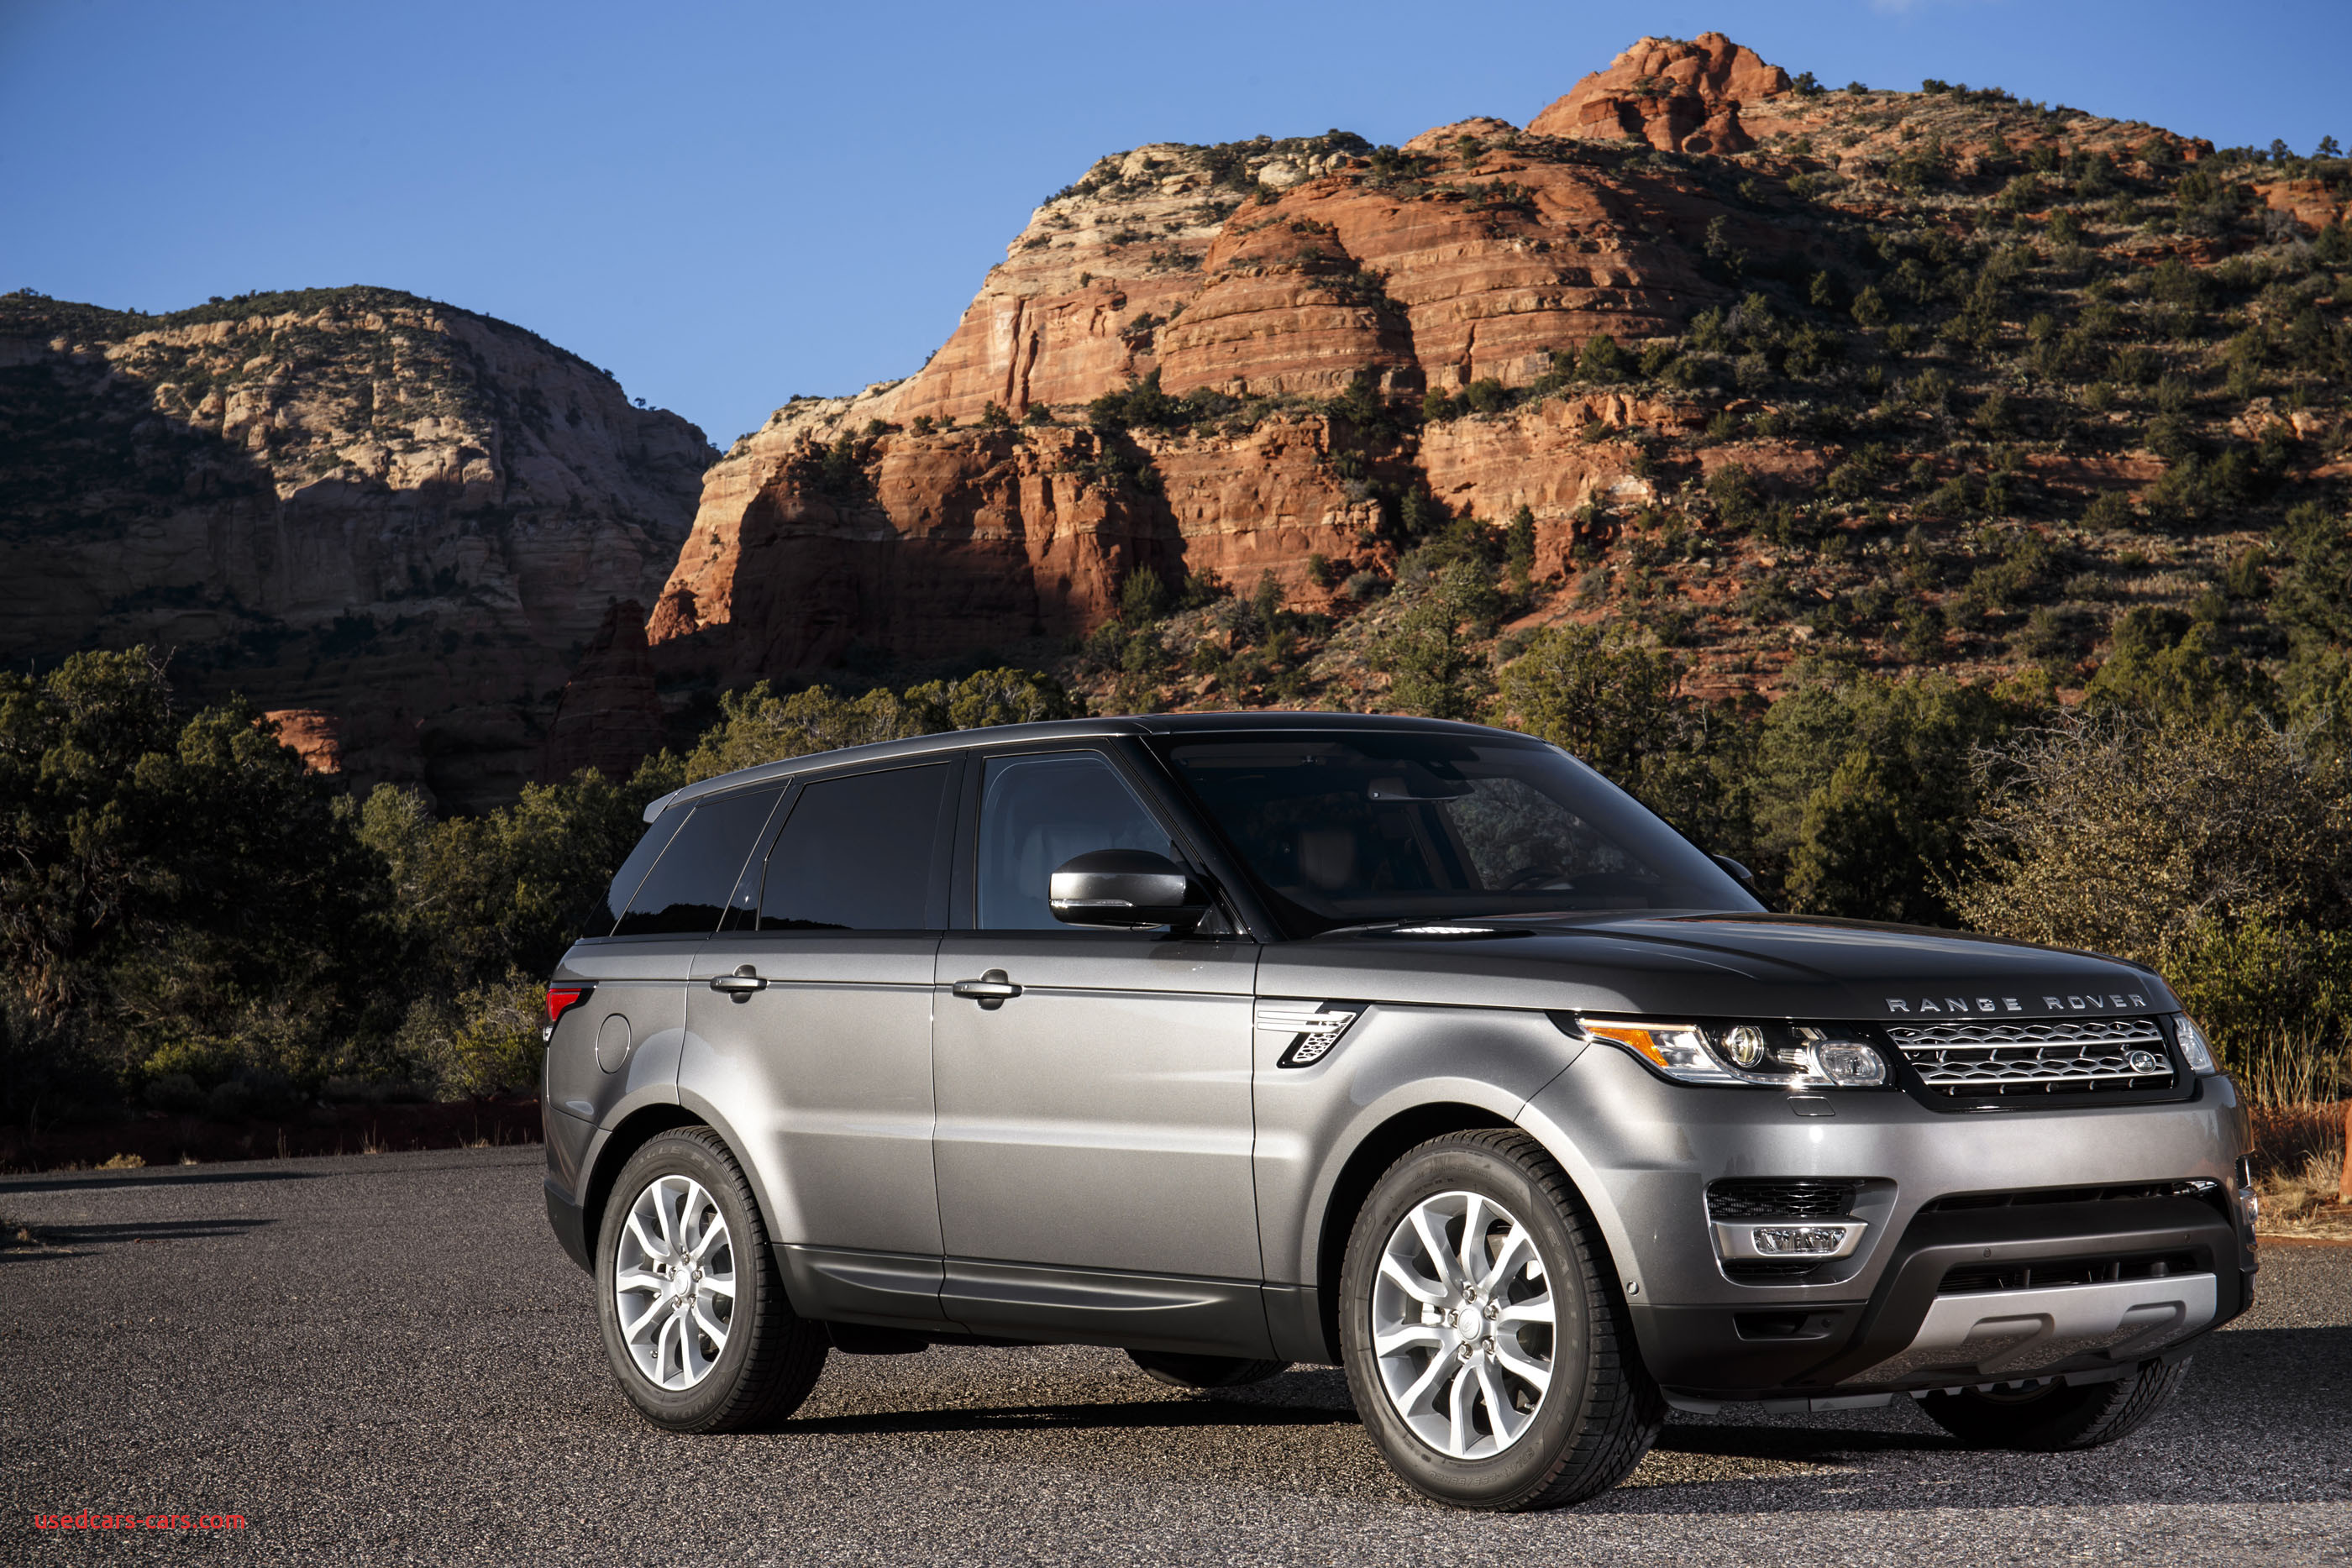 Range Rover Sport Dimensions Best Of 2017 Land Rover Range Rover Sport Review Ratings Specs